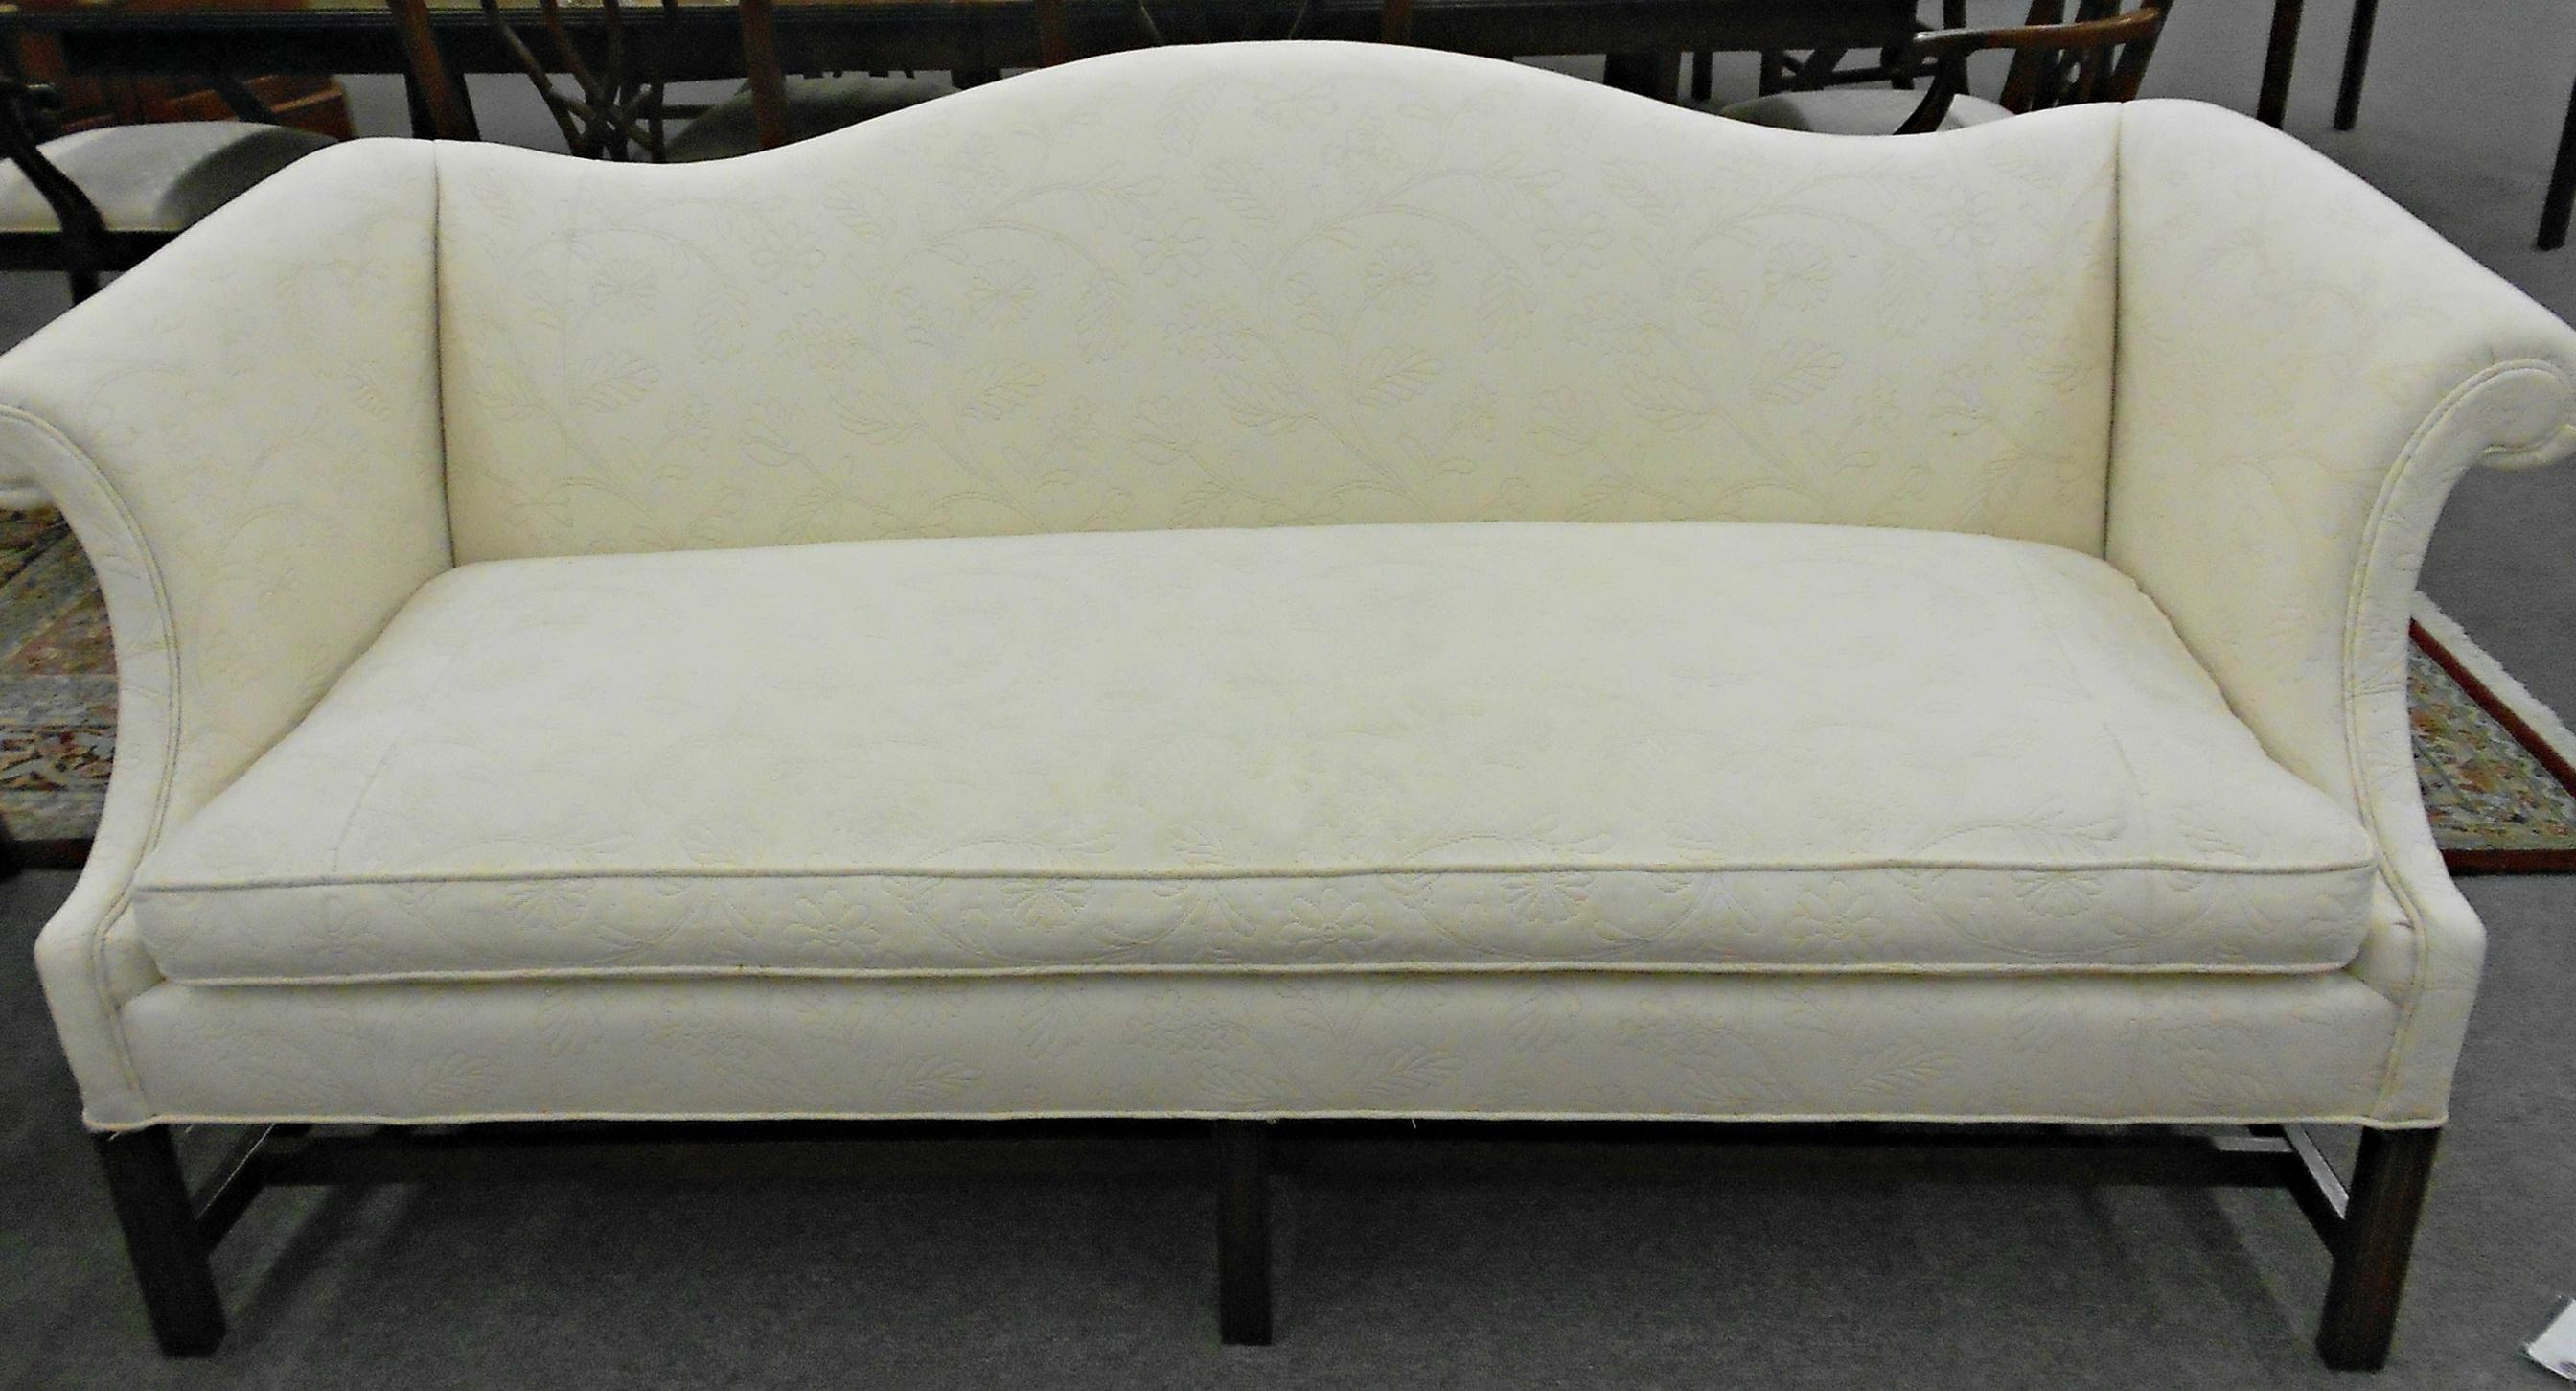 Sofas Center : Unbelievable Slipcover For Camelback Sofa Image Throughout Camel Back Sofa Slipcovers (Image 20 of 20)